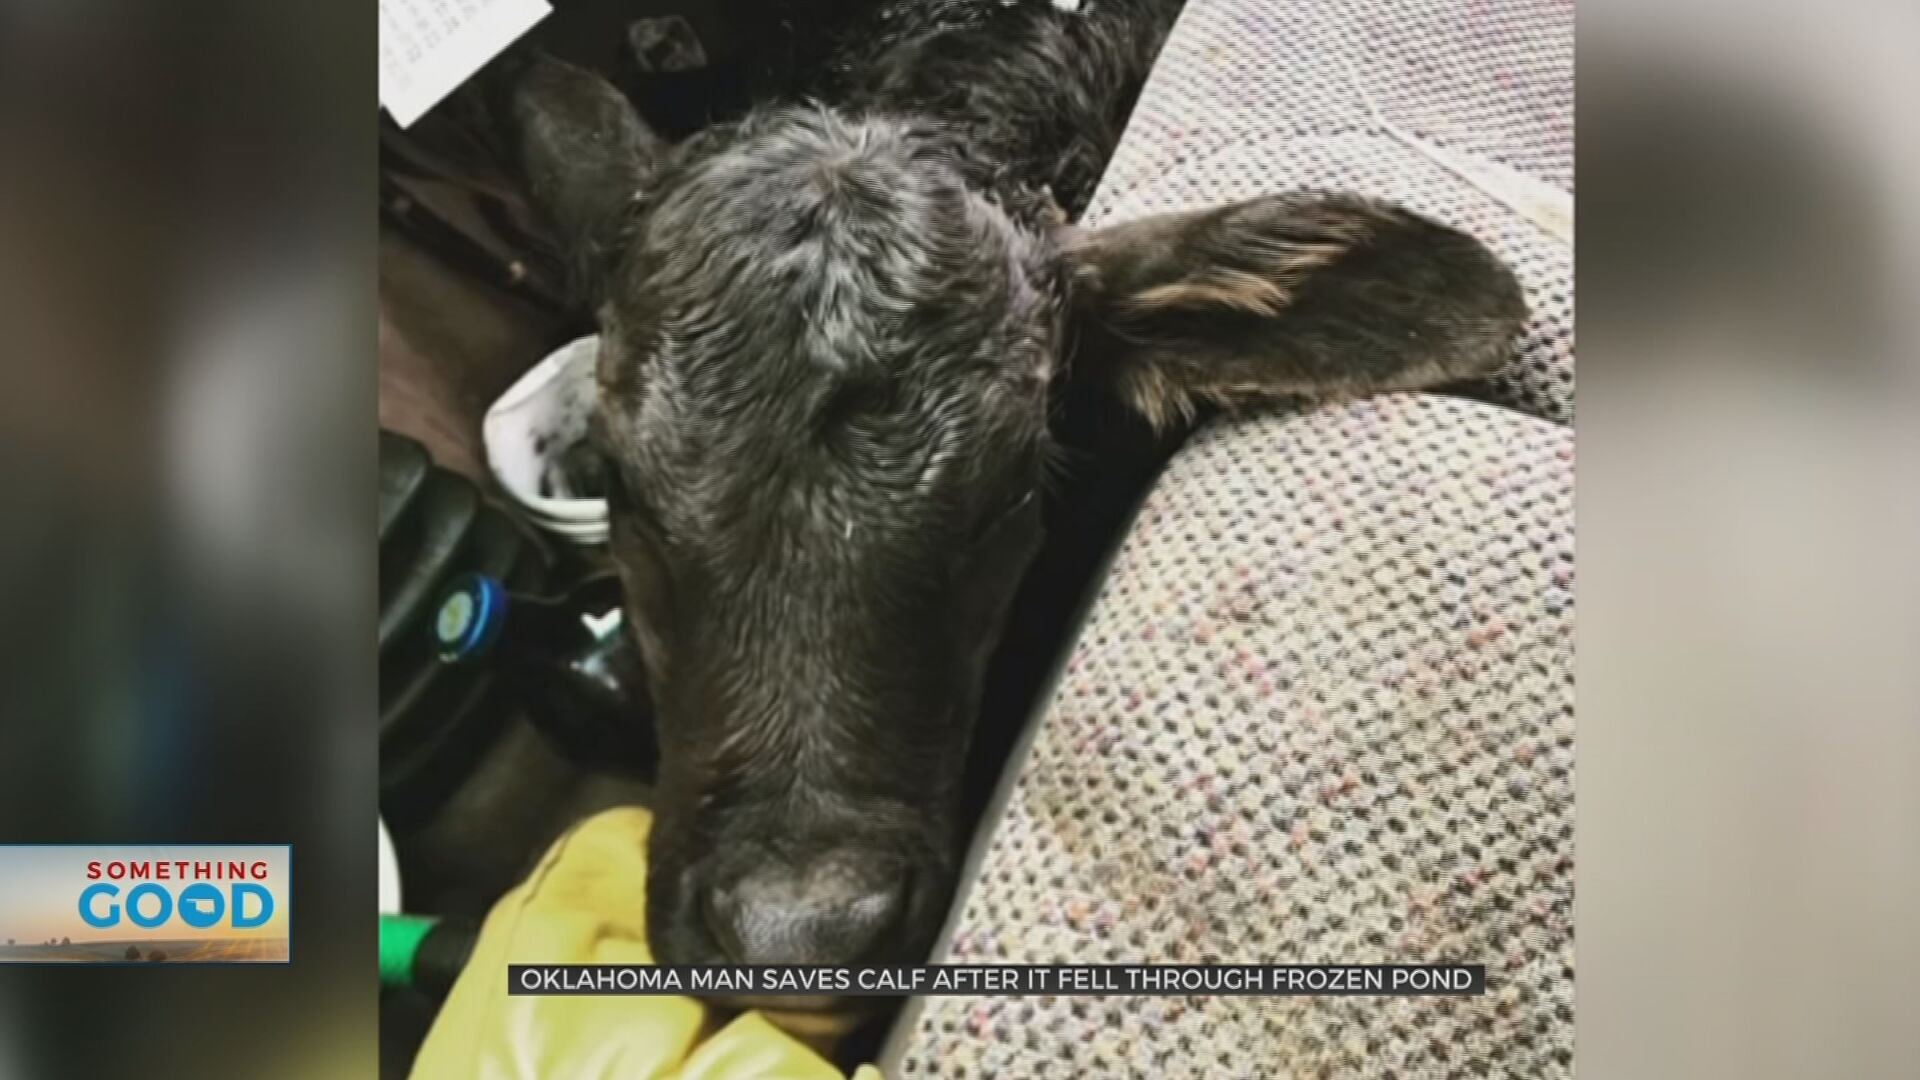 Oklahoma Rancher Saves Calf After It Fell Through Frozen Pond